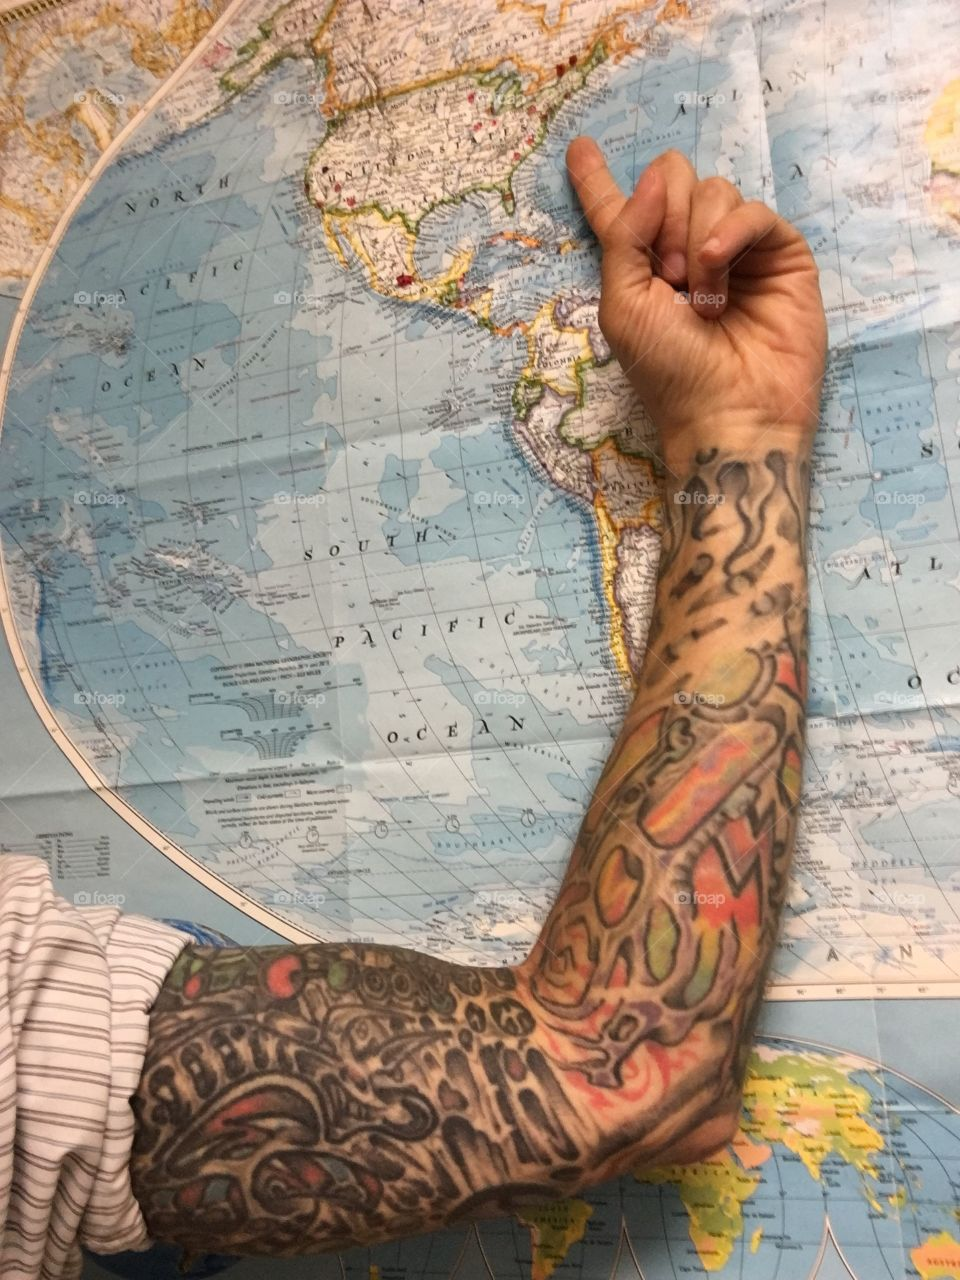 Pointing to my home Troy, Ny on a world map.